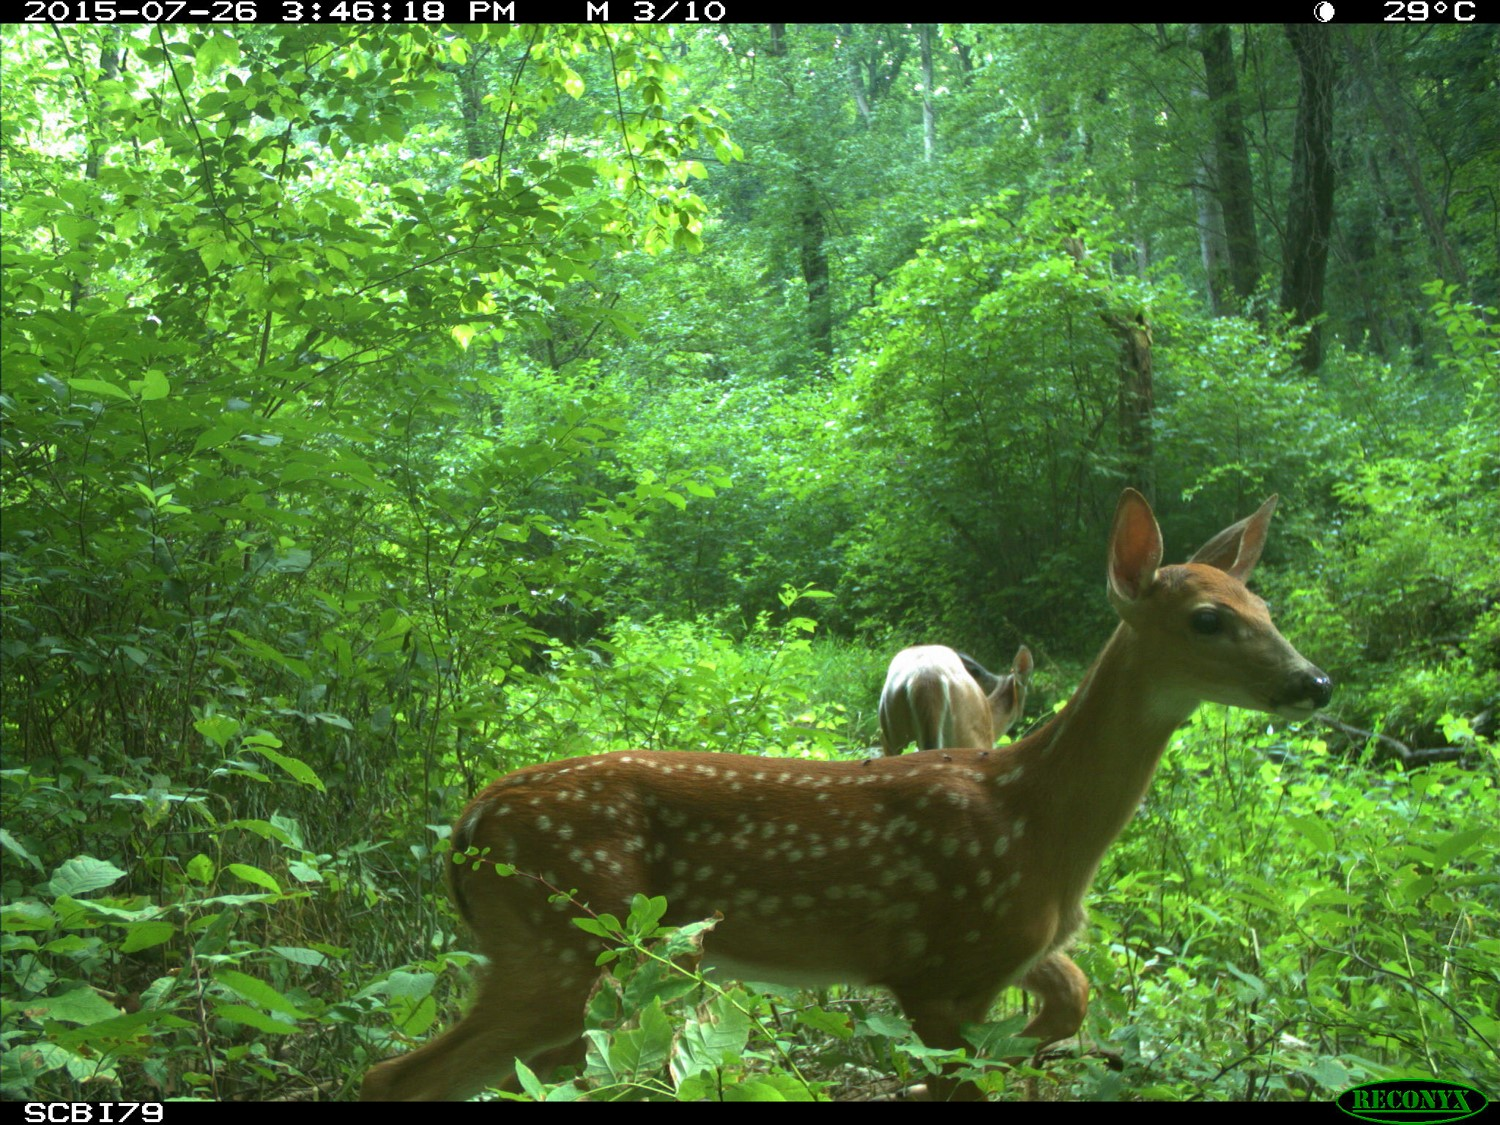 Camera Trap picture of deer